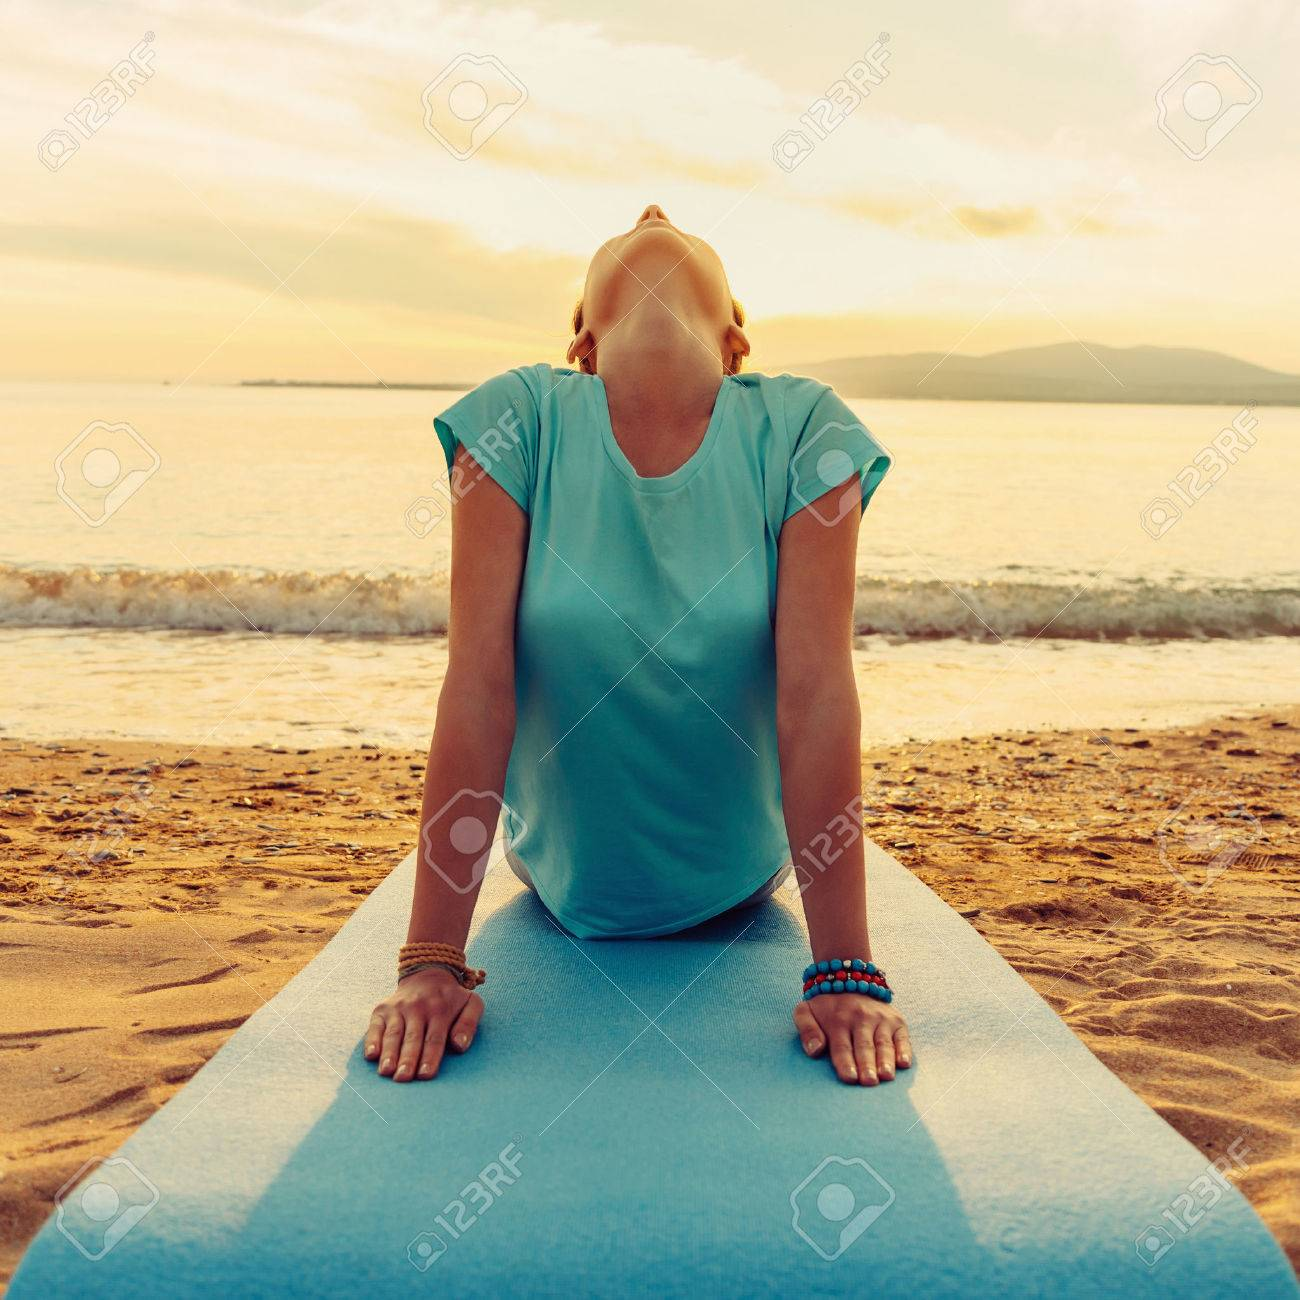 Young woman practicing yoga in upward facing dog pose on beach near the sea on sunset, front view - 49153962